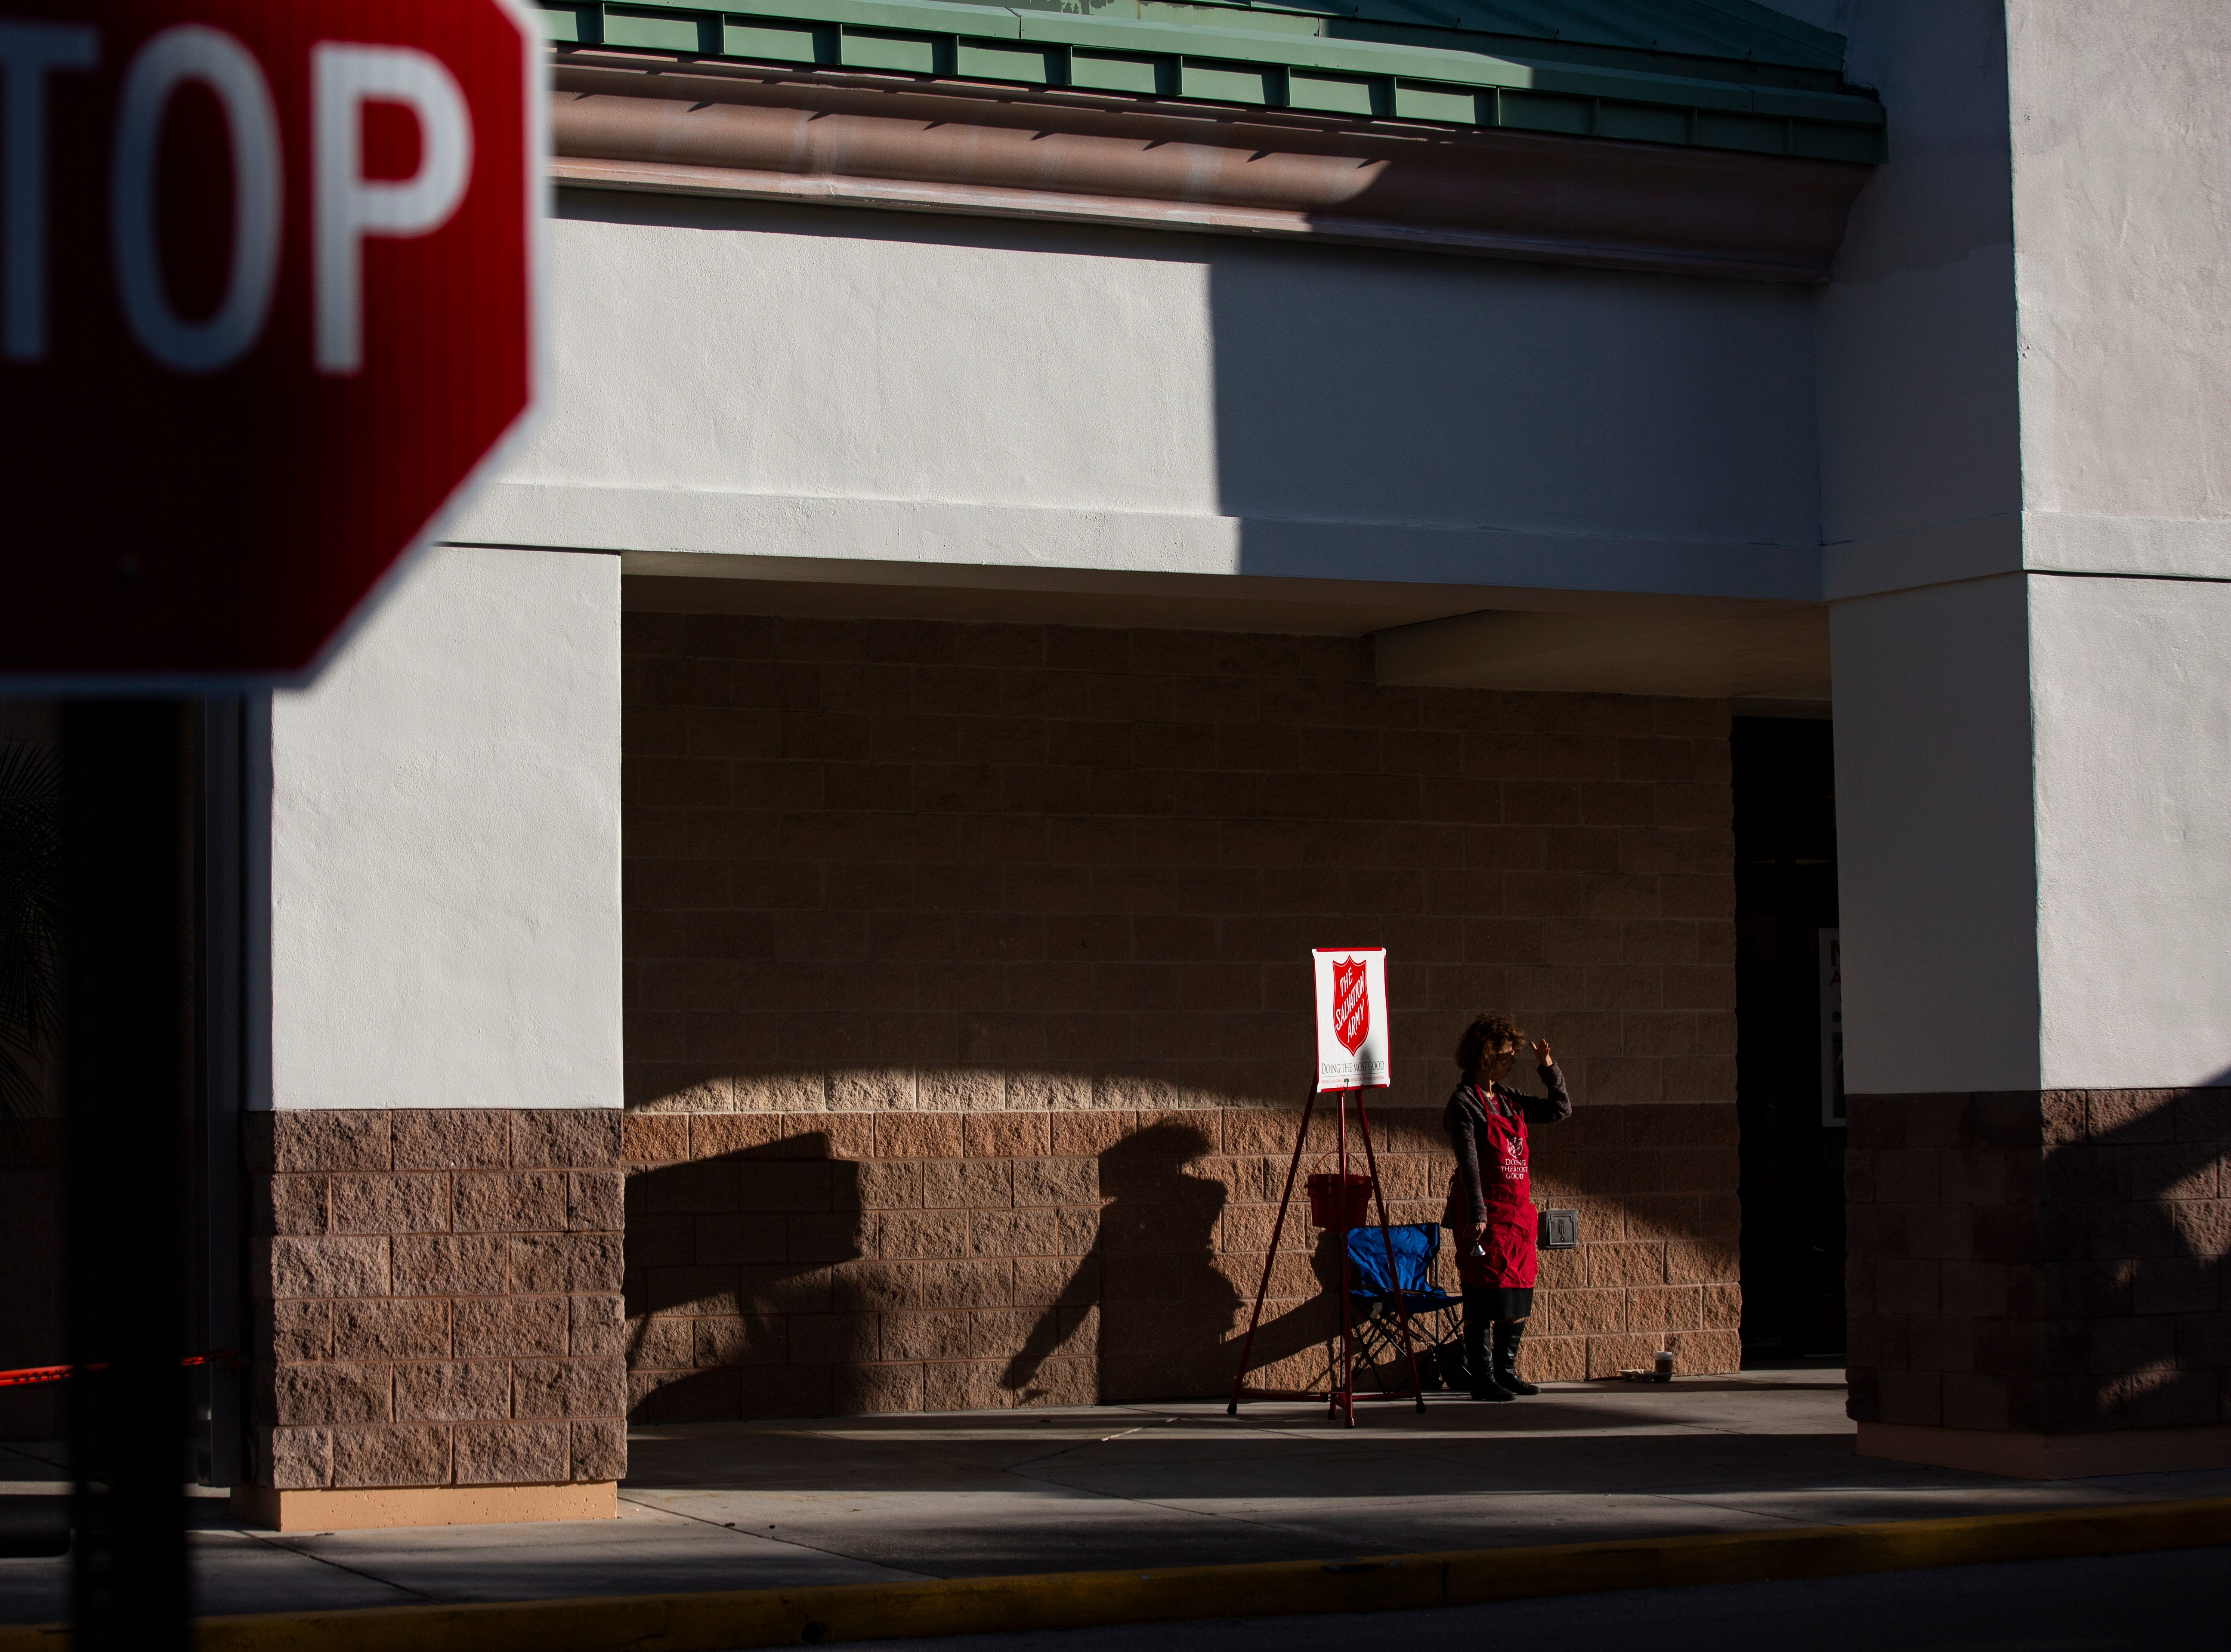 Harriet Heithaus, a reporter from the Naples Daily News, shades her face from the sun as she waits to ring the bell for Salvation Army at Coastland Center near the back entrance of J.C. Penney on Nov. 28.